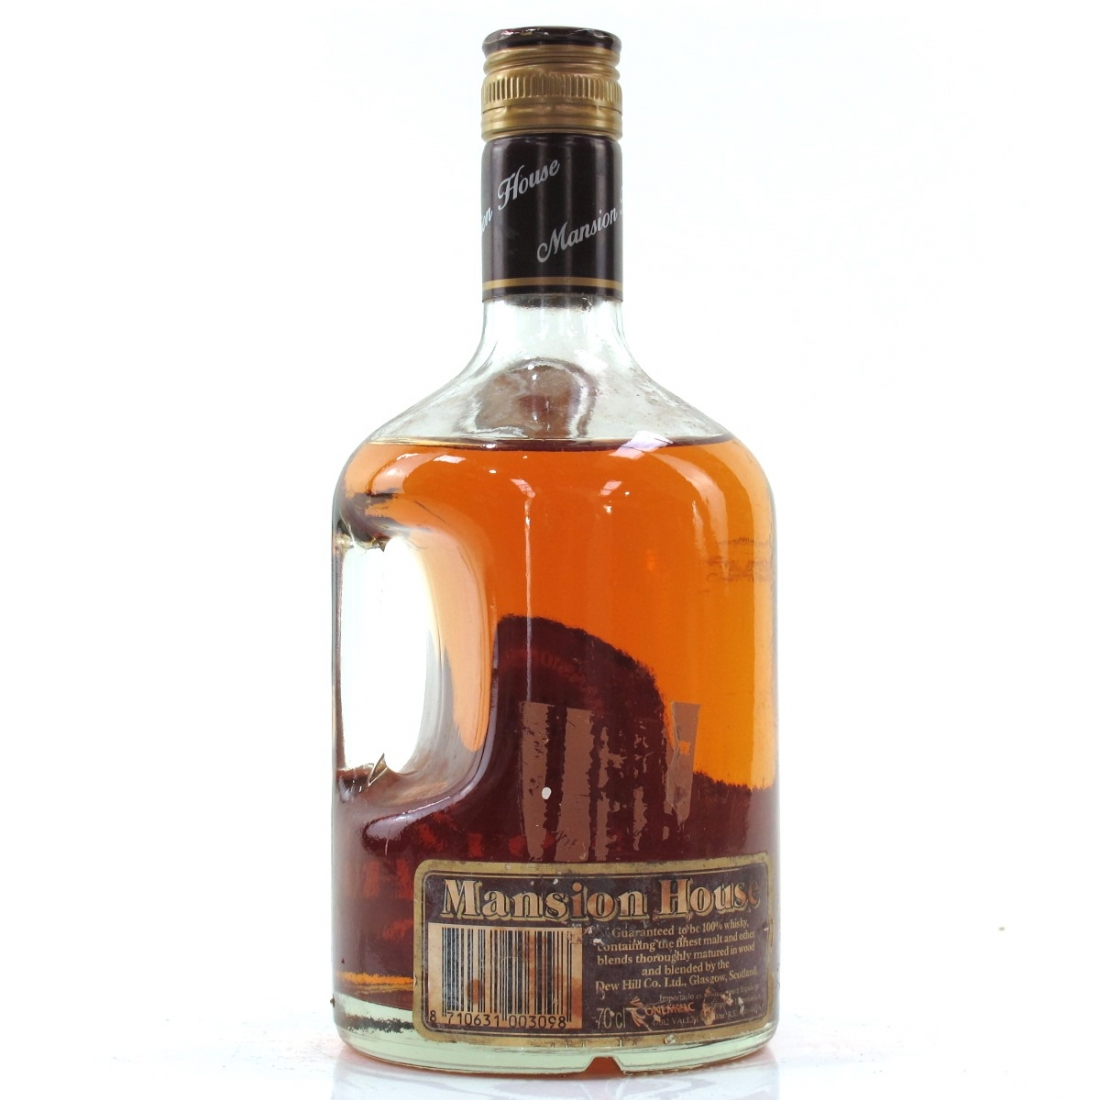 Mansion House 5 Year Old Scotch Whisky